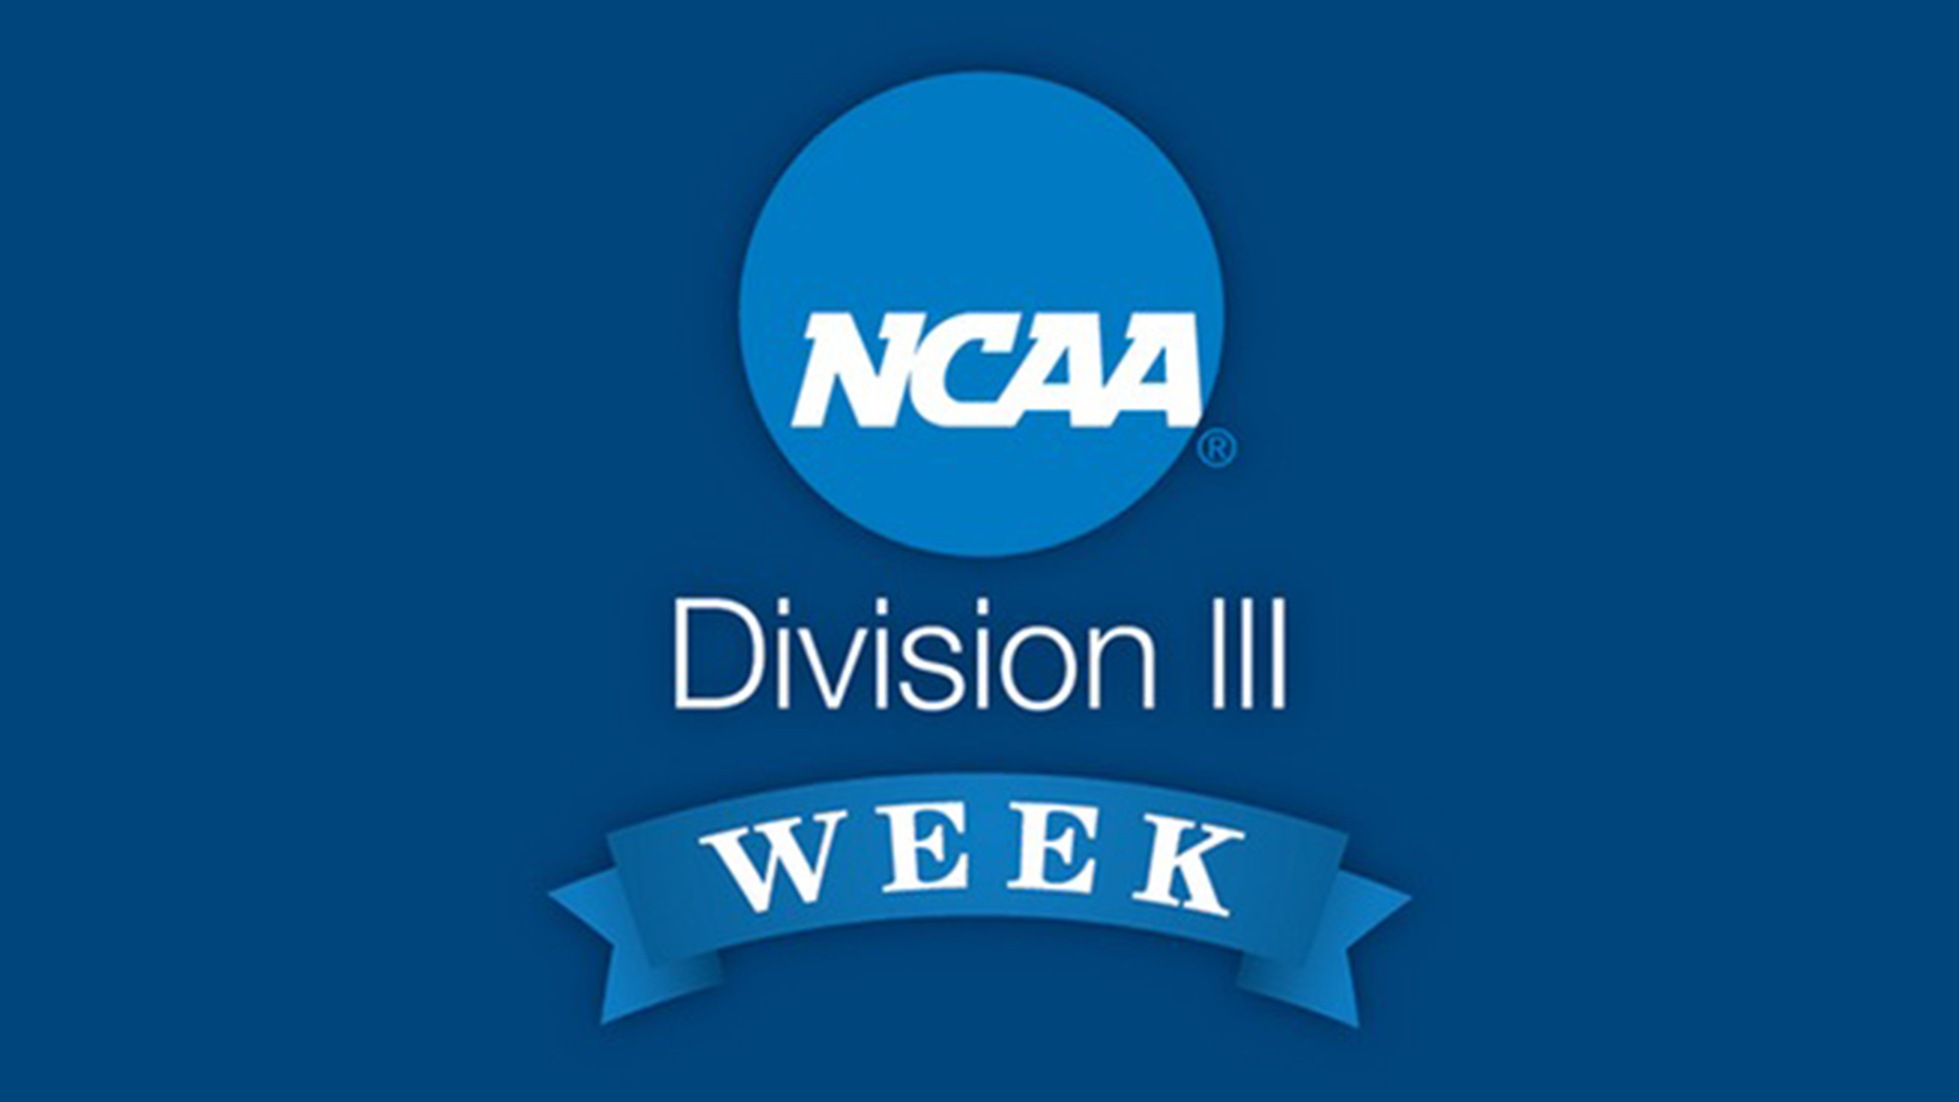 NCAA d3week logo